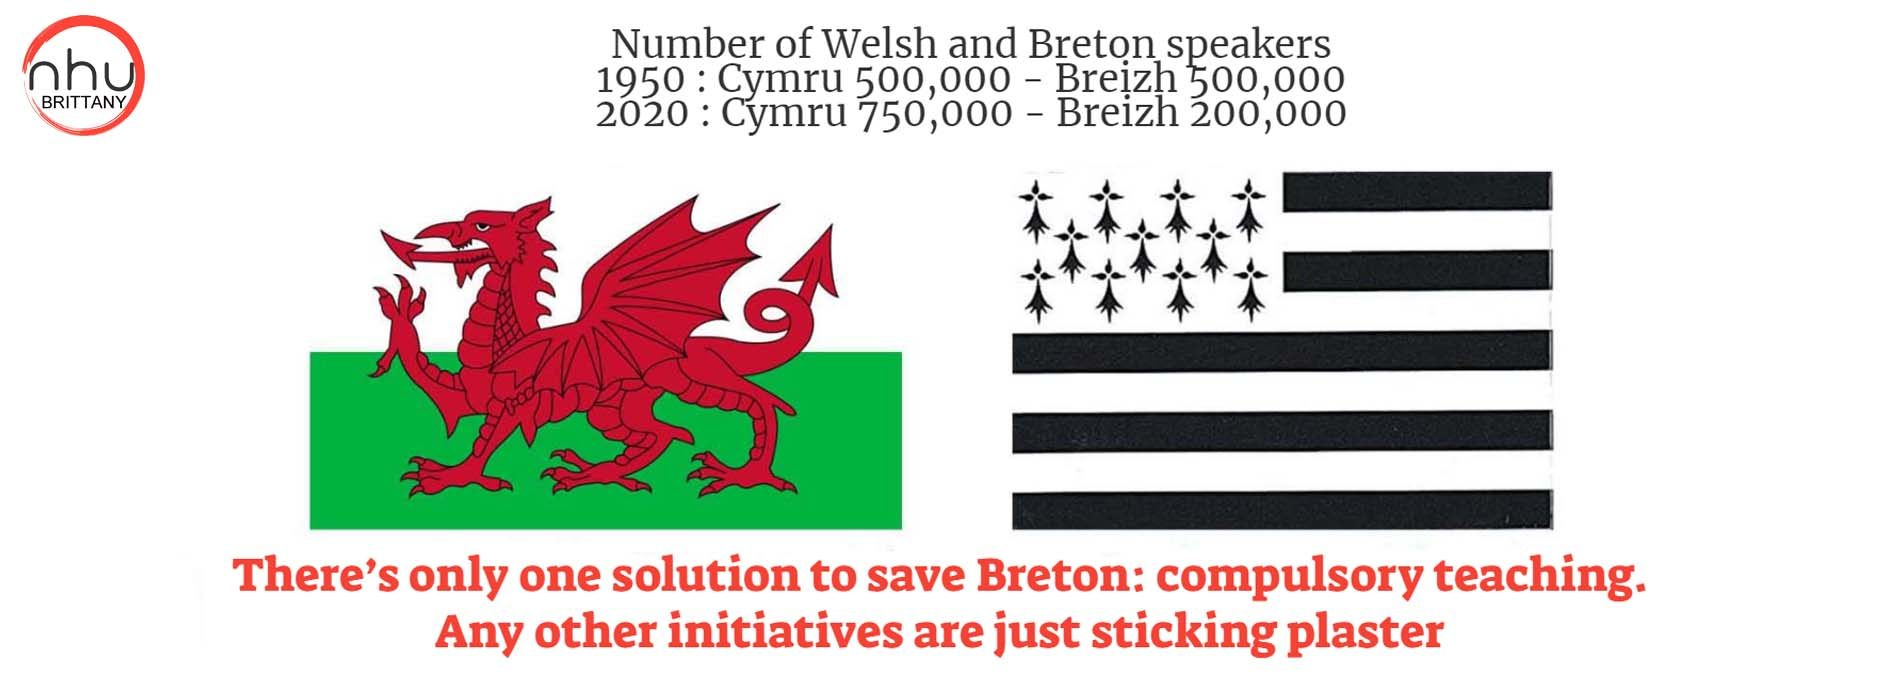 ✅ To save Breton from extinction, there's only one solution